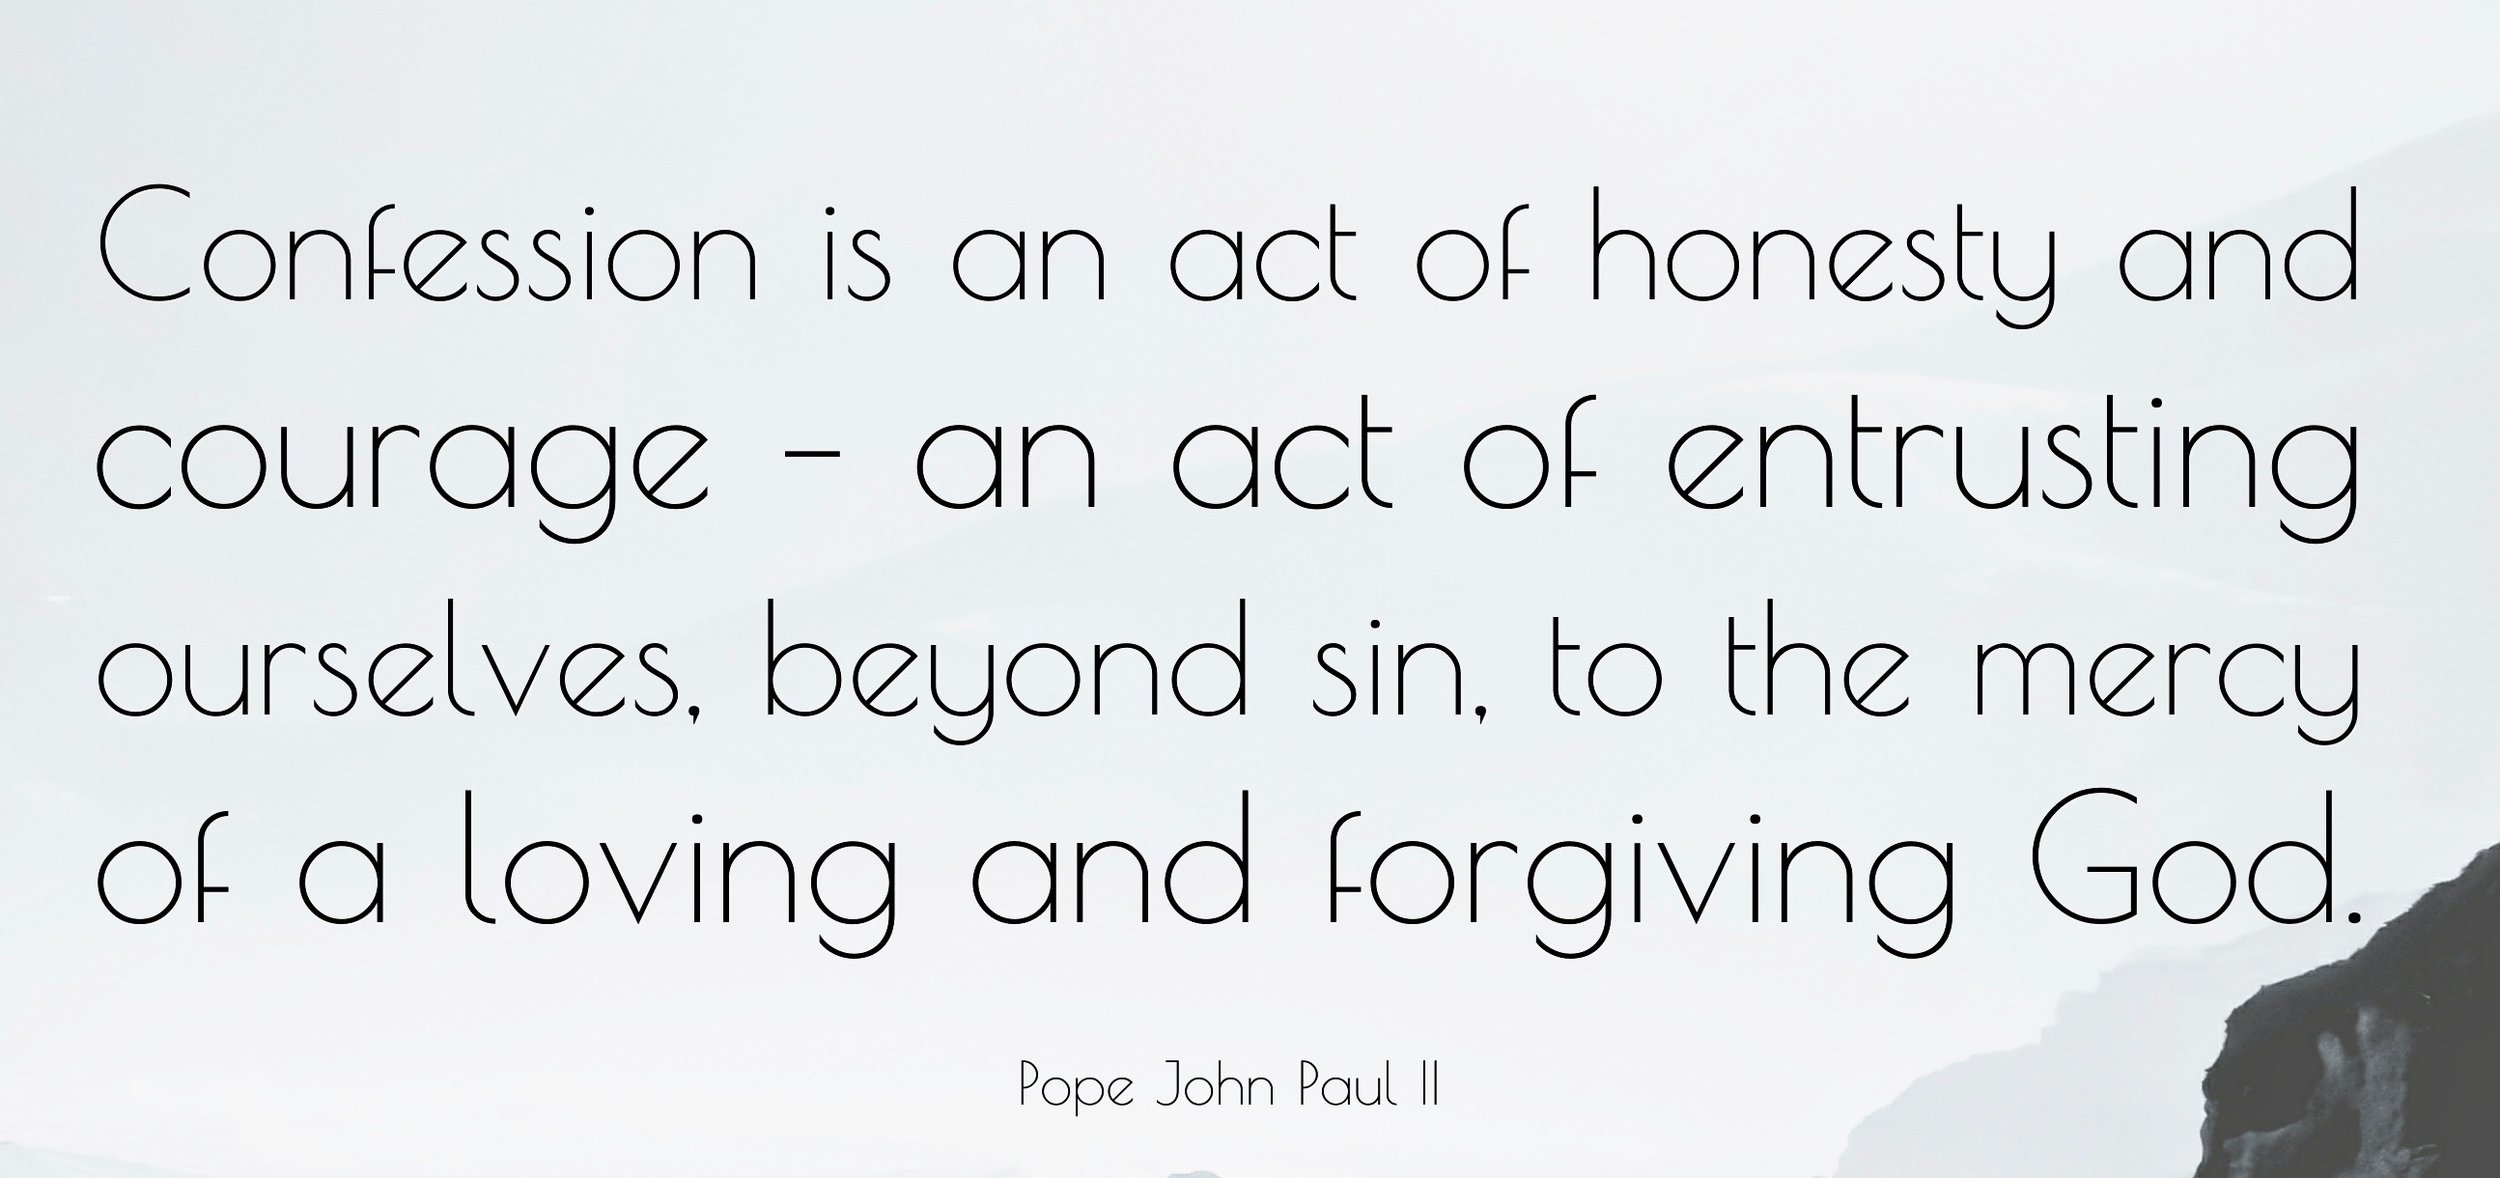 421211-Pope-John-Paul-II-Quote-Confession-is-an-act-of-honesty-and.jpg